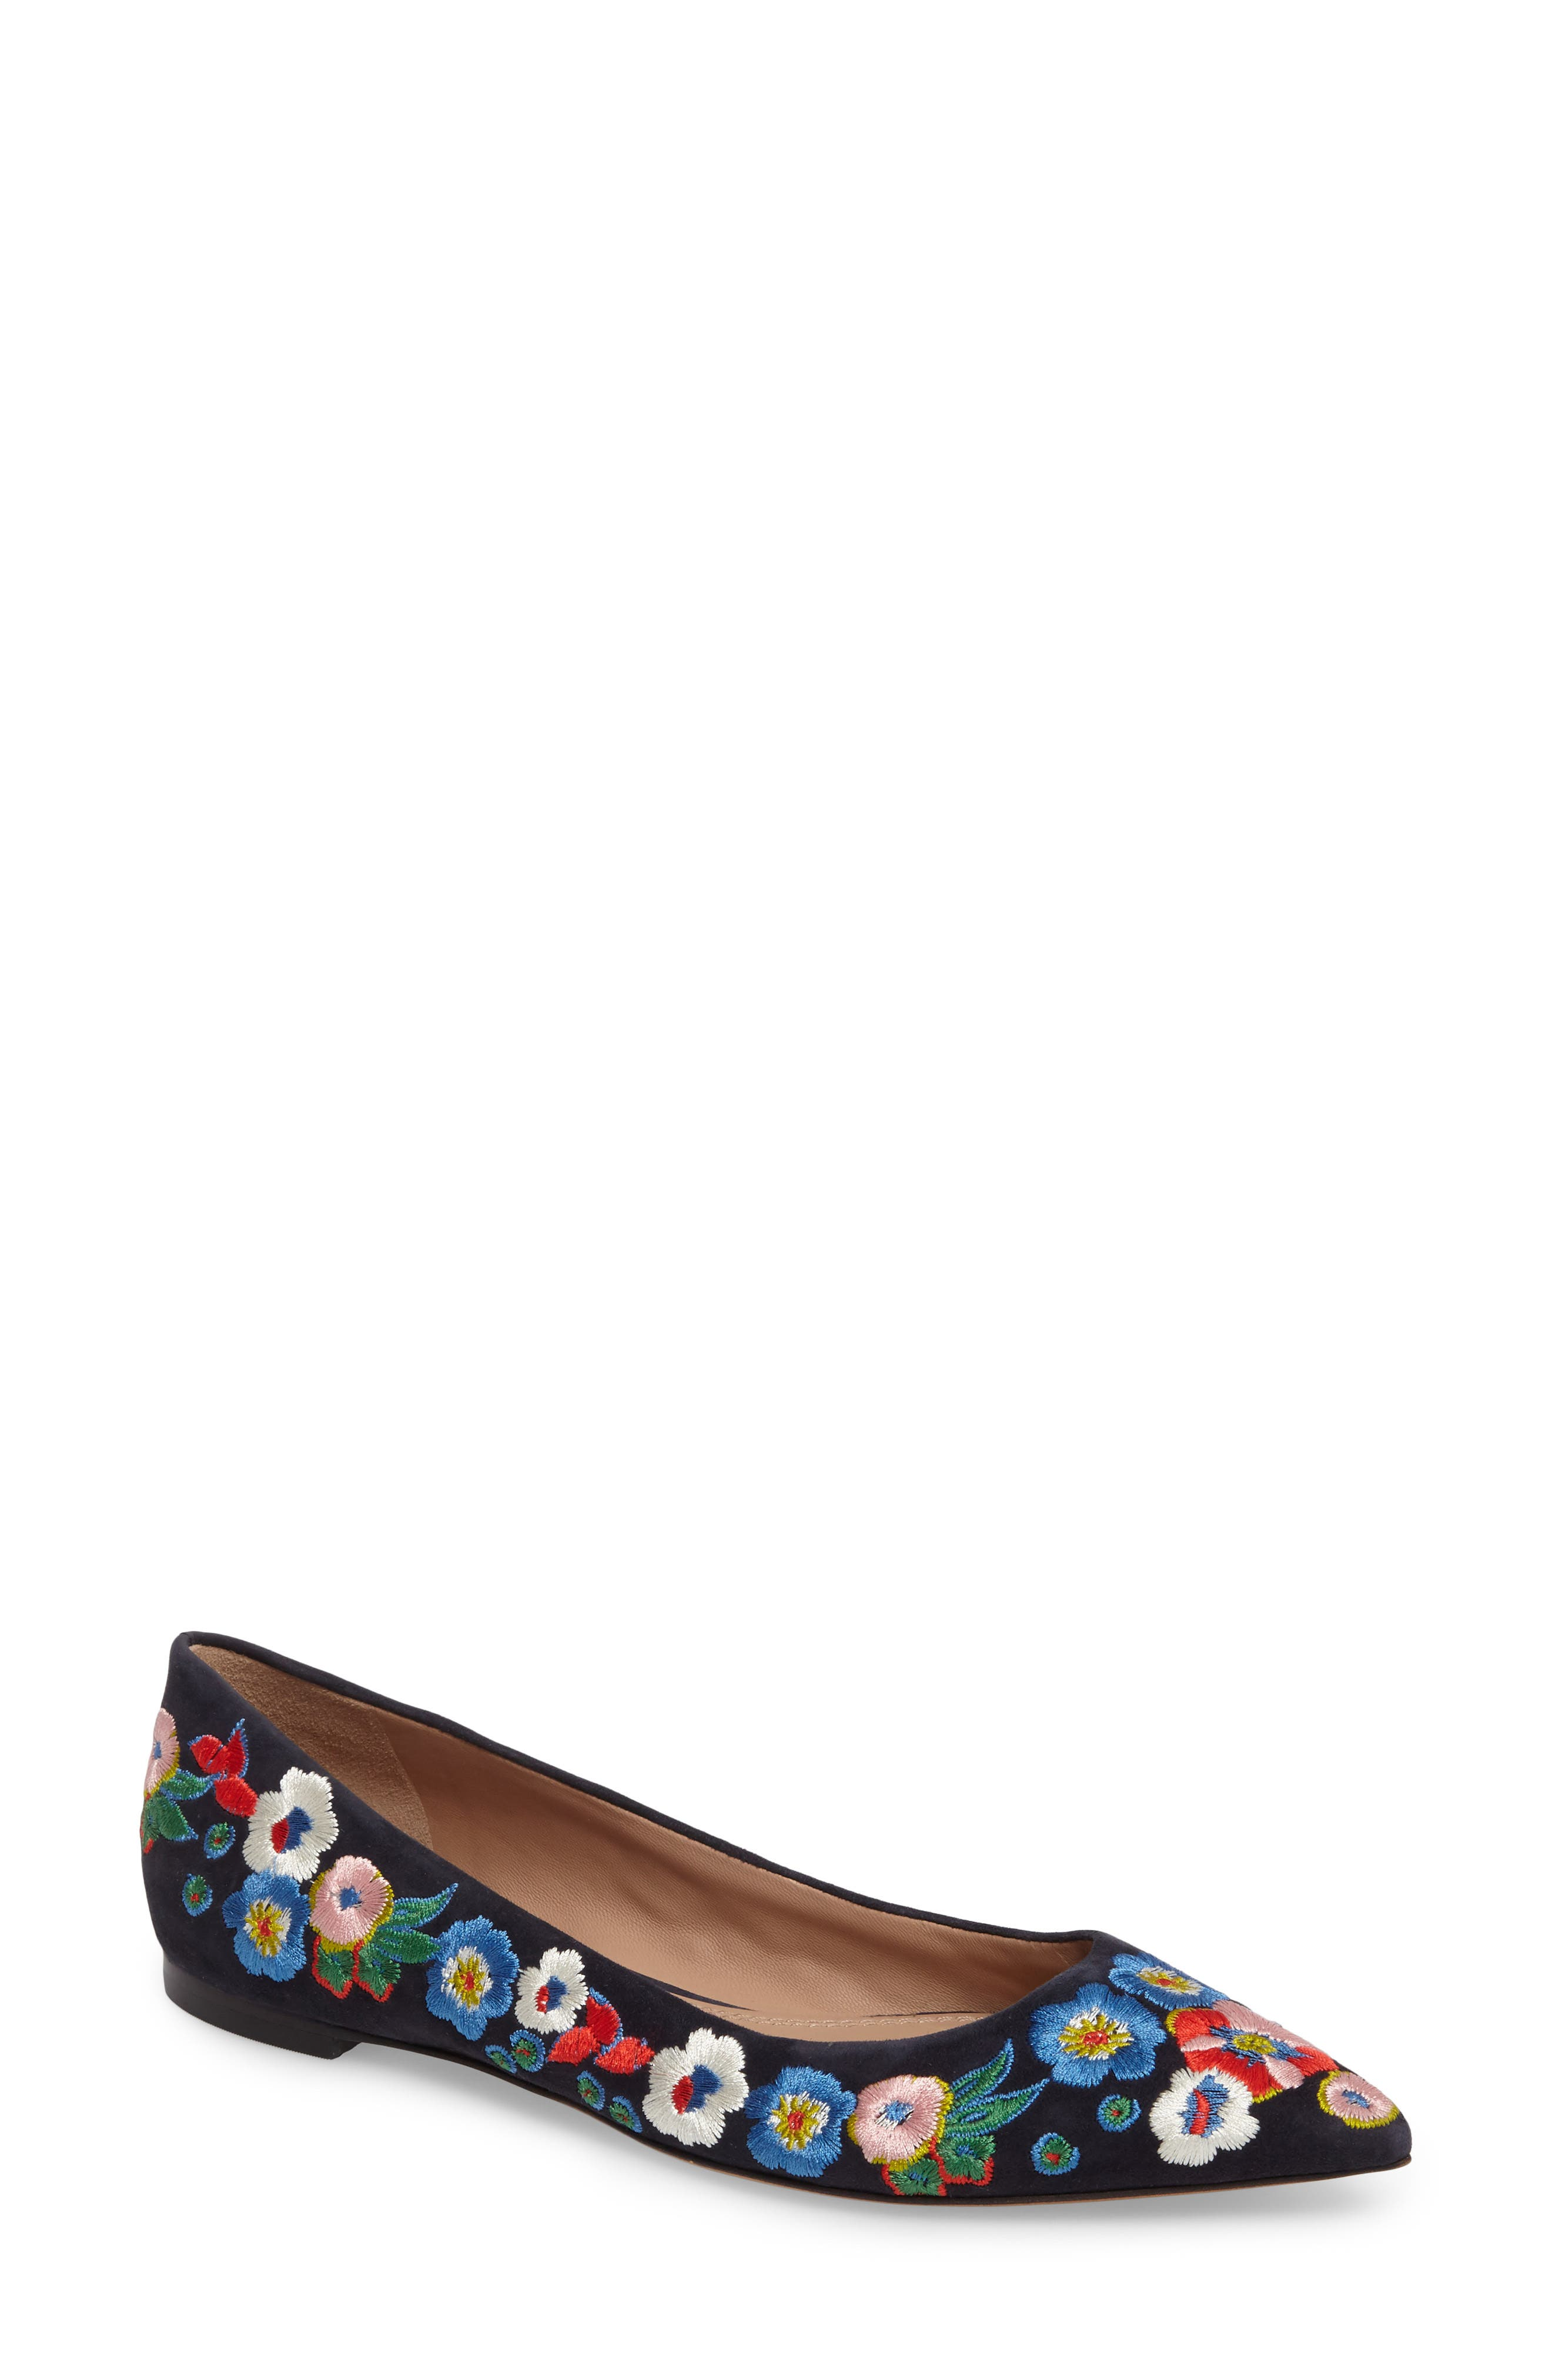 Rosemont Flower Embroidered Flat,                         Main,                         color, Tory Navy/ Pansy Bouquet